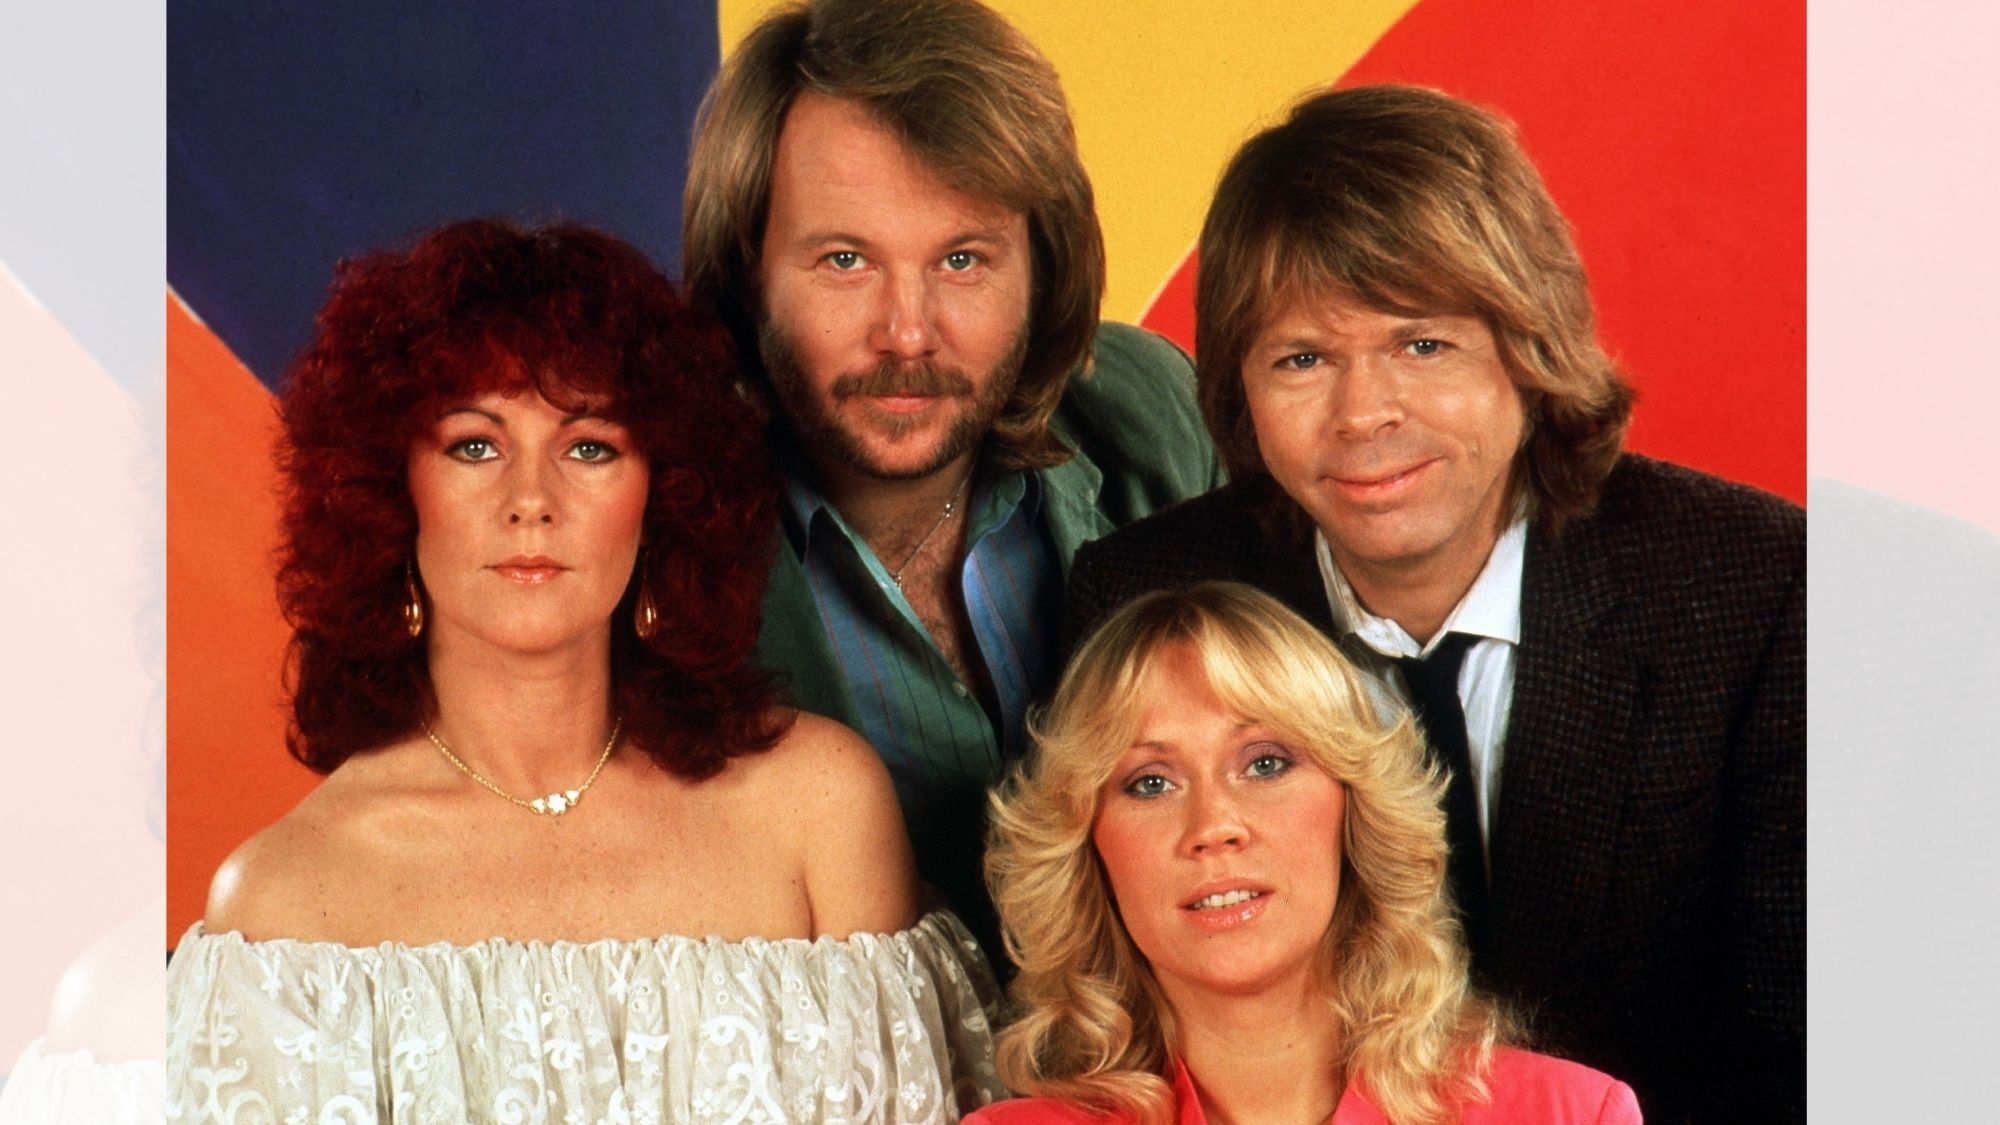 ABBA Set To Reunite For A Holographic 'ABBAtar Tour'